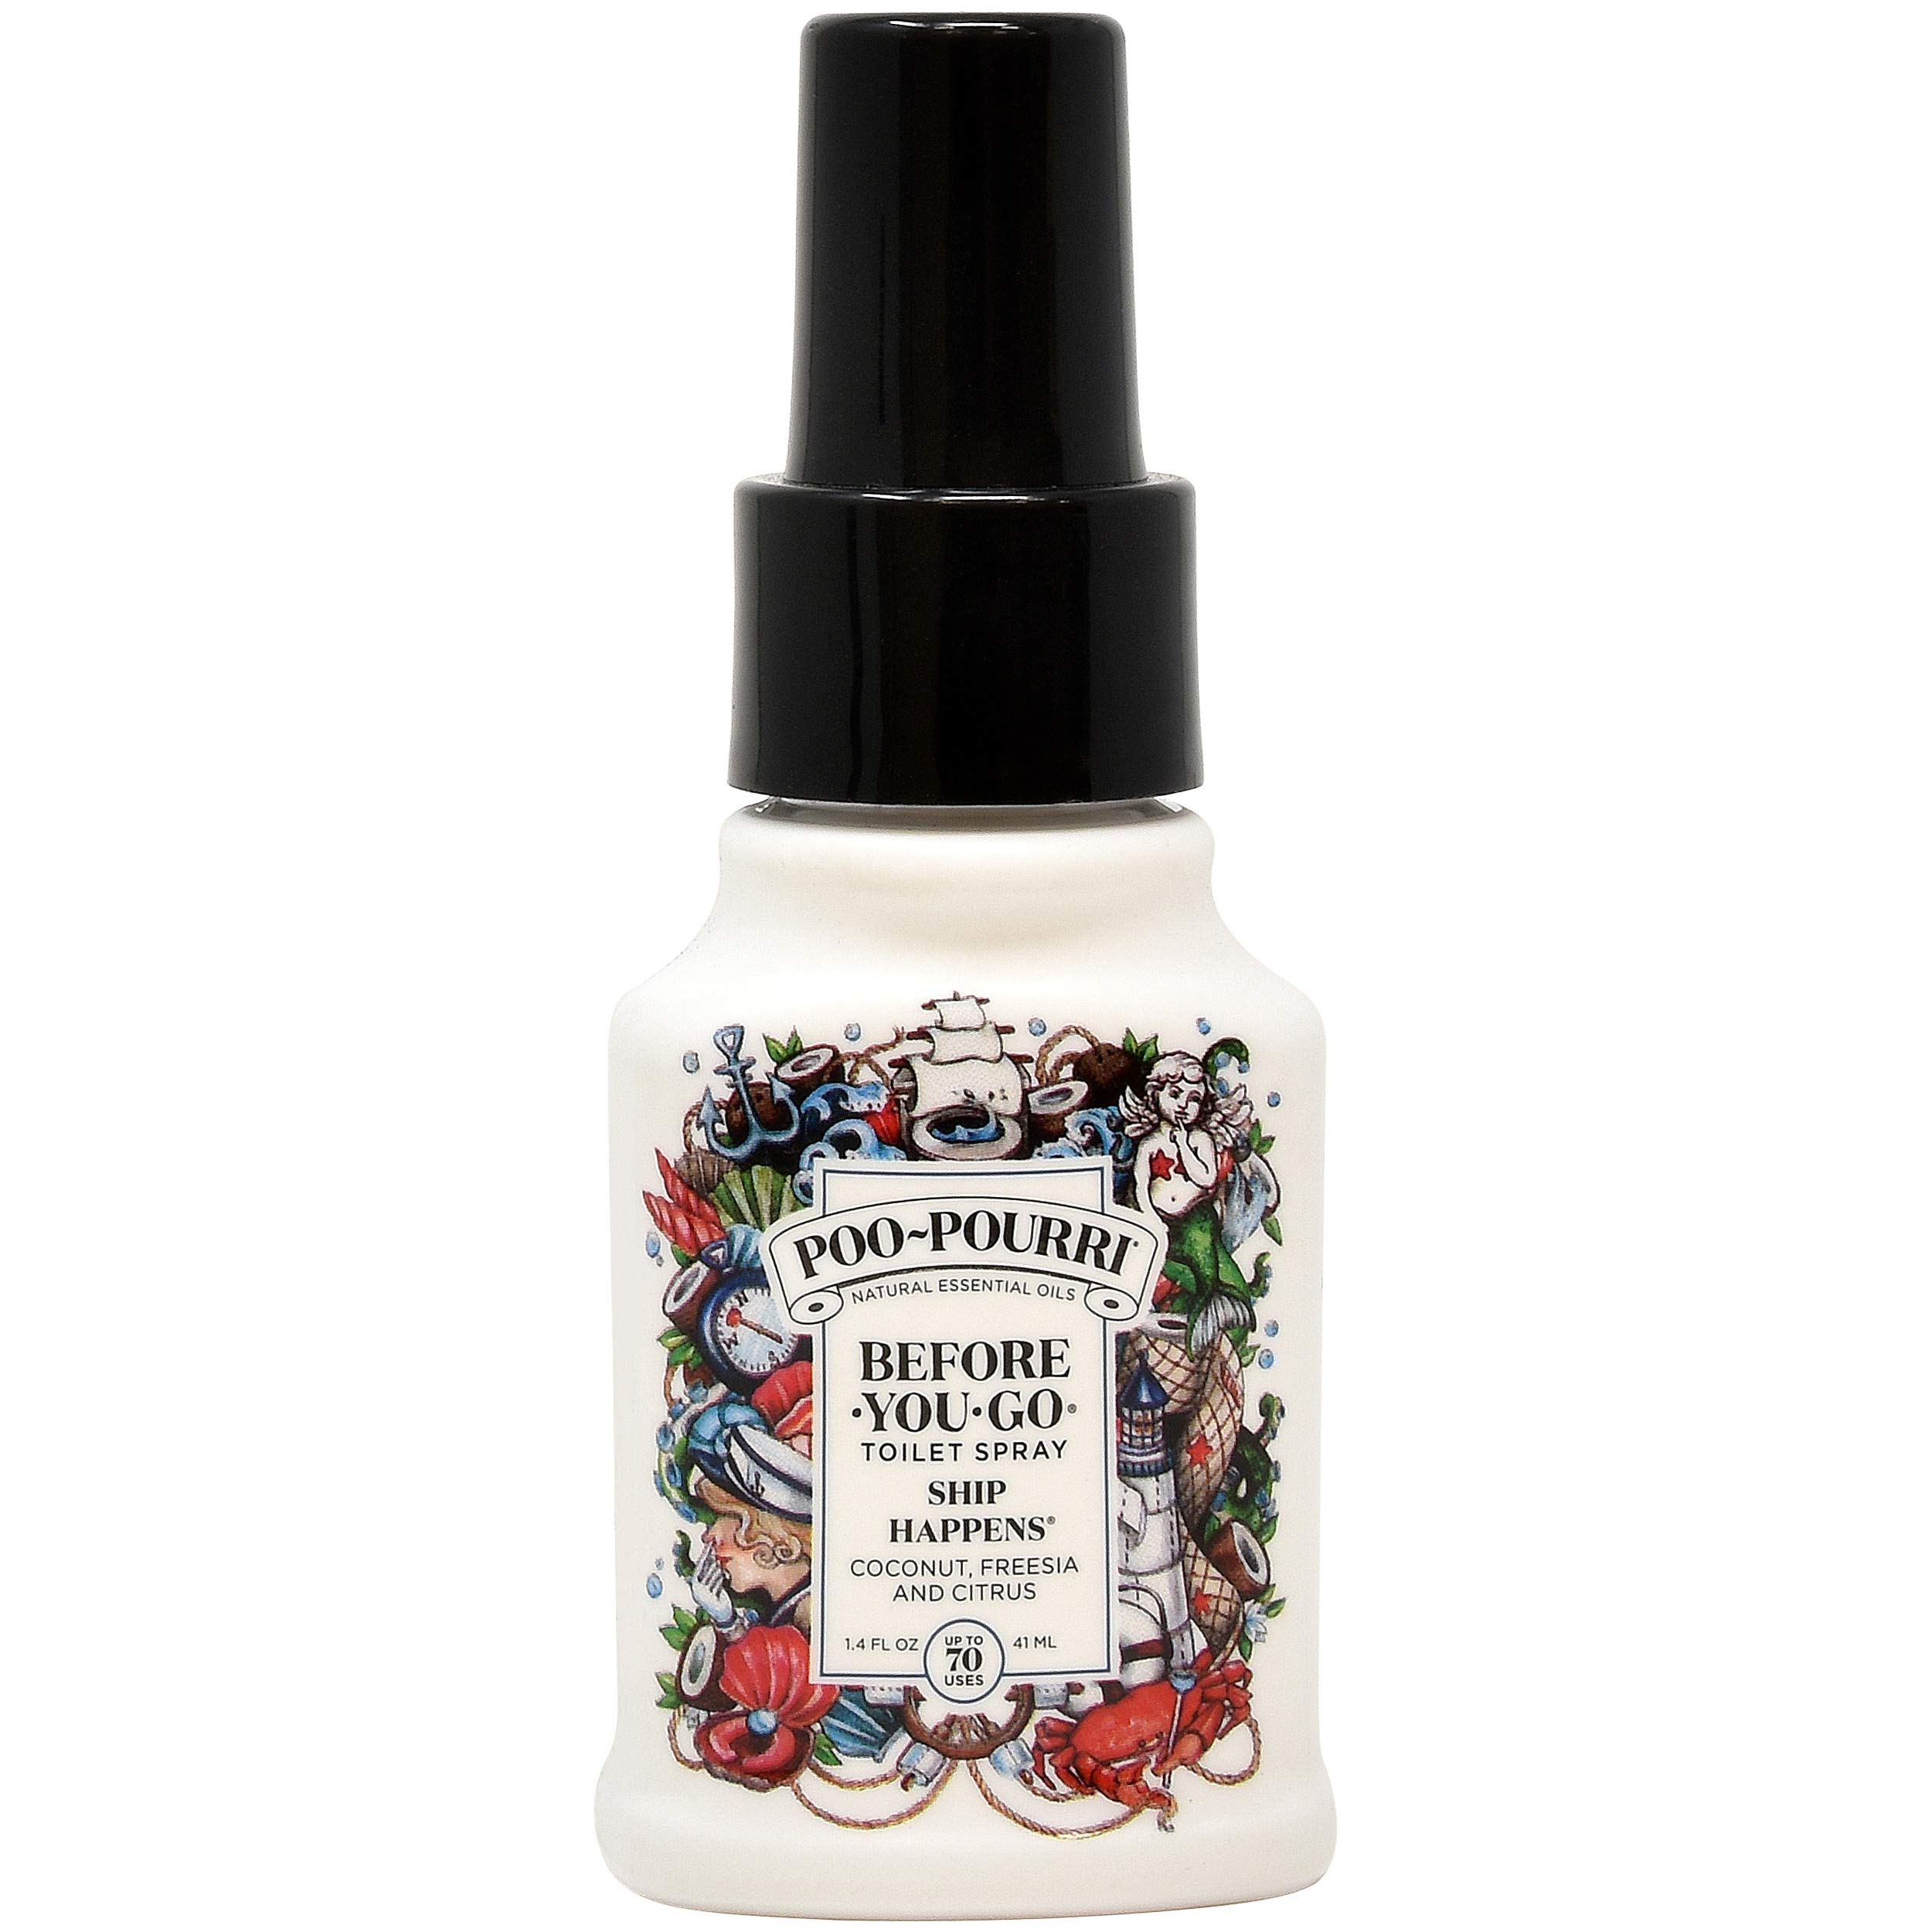 Poo-Pourri in A Pinch Pack Toilet Spray Gift Set, 5 Pack 10 mL, and 1.4 Ounce Ship Happens Bottle by Poo-Pourri (Image #3)